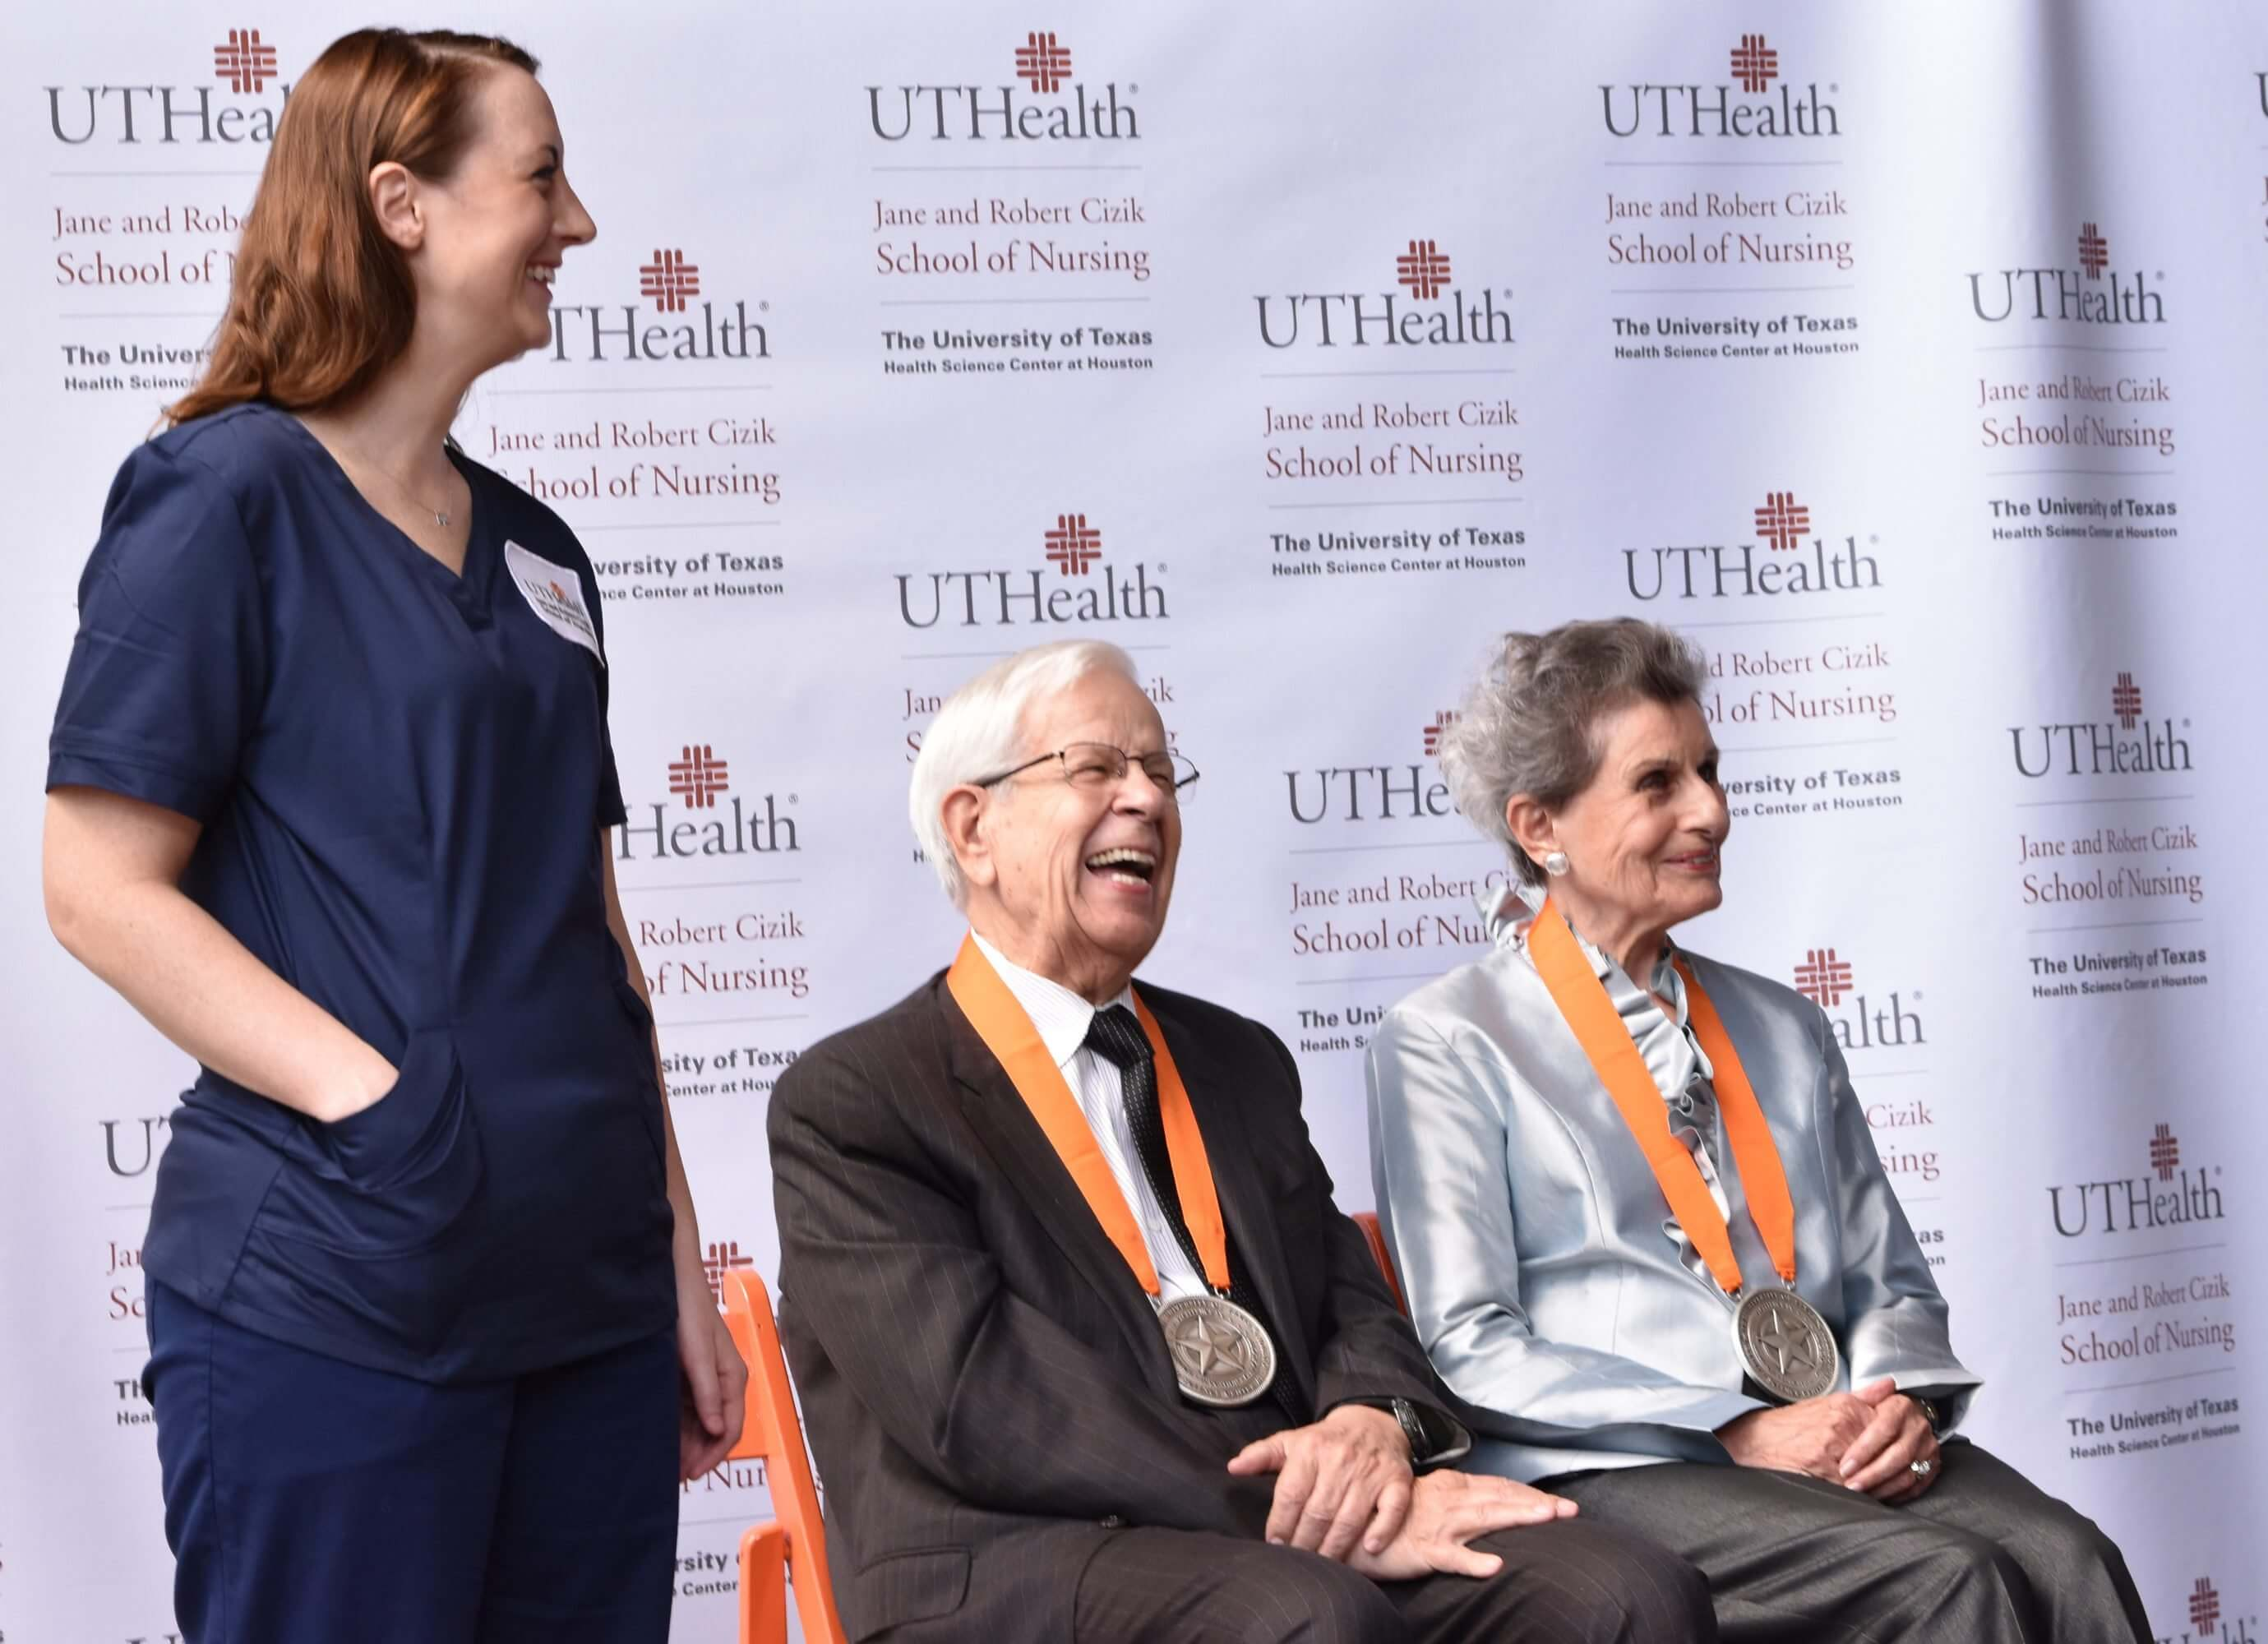 Cizik School of Nursing student Krista Robinson joins Robert and Jane Cizik on stage to show the school's new patch on her uniform. Photo by Katy Umana/UTHealth.